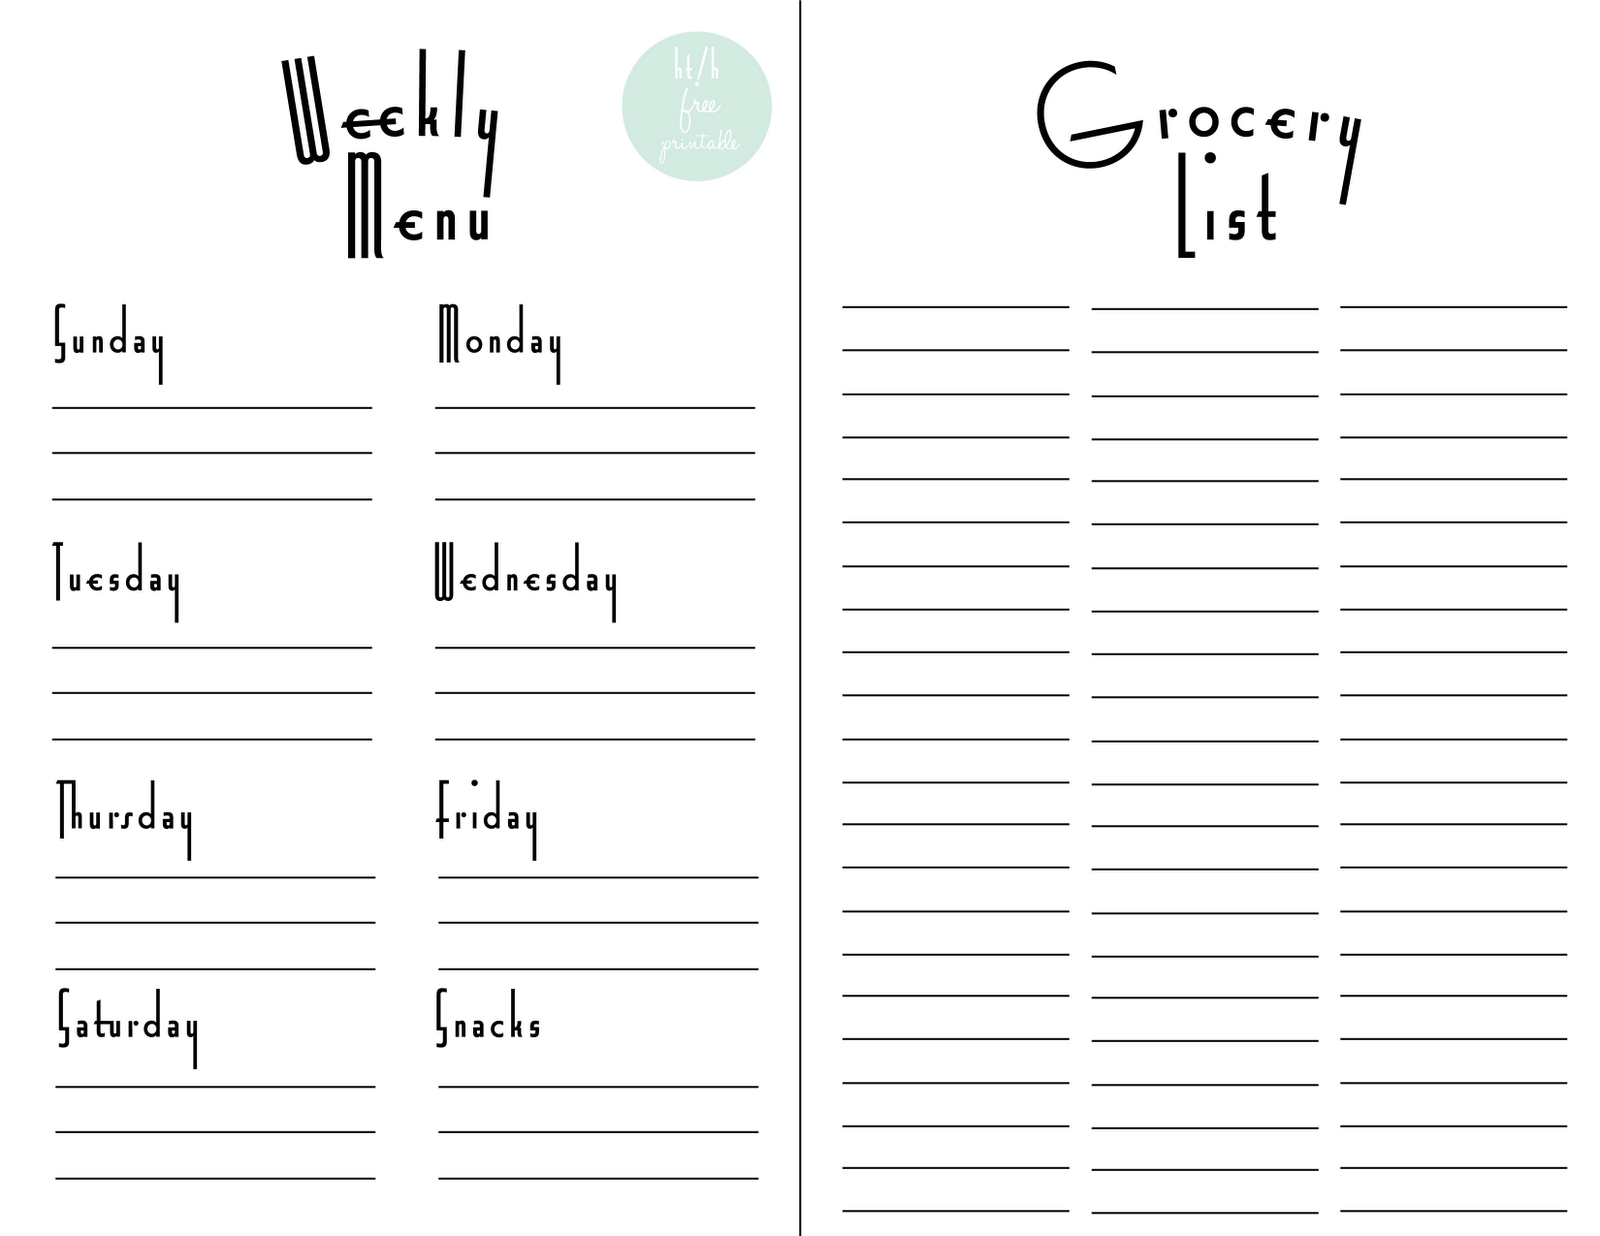 Monthly Menu Planner With Grocery List. Weekly Menu Planner Grocery List  Free Printable ...  Printable Grocery List Template Free